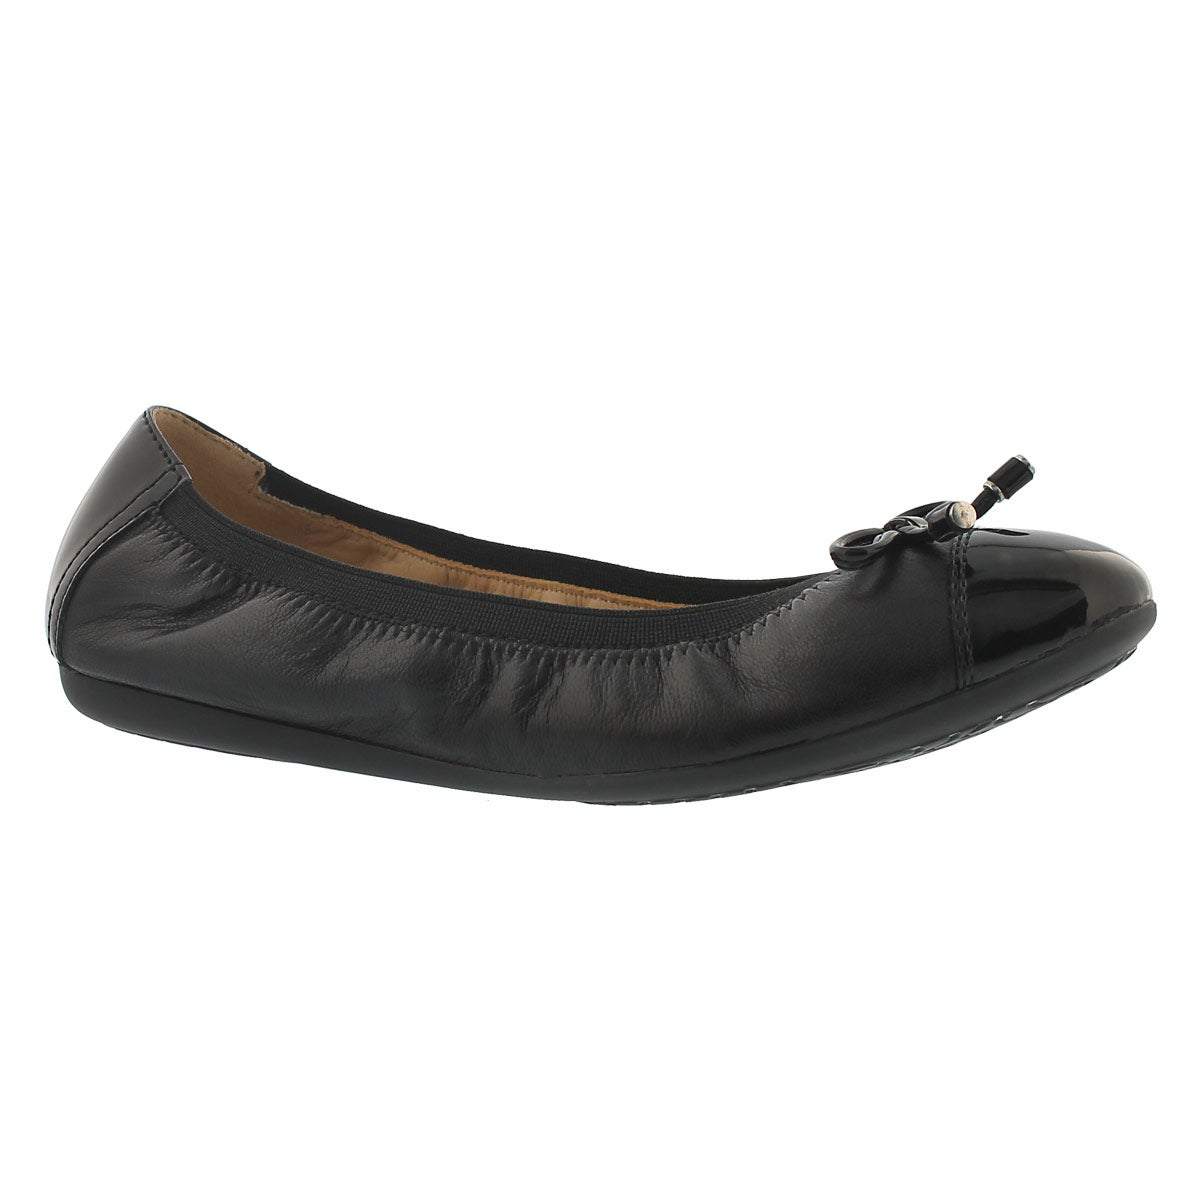 Lds Lola 2Fit blk leather ballerina flat